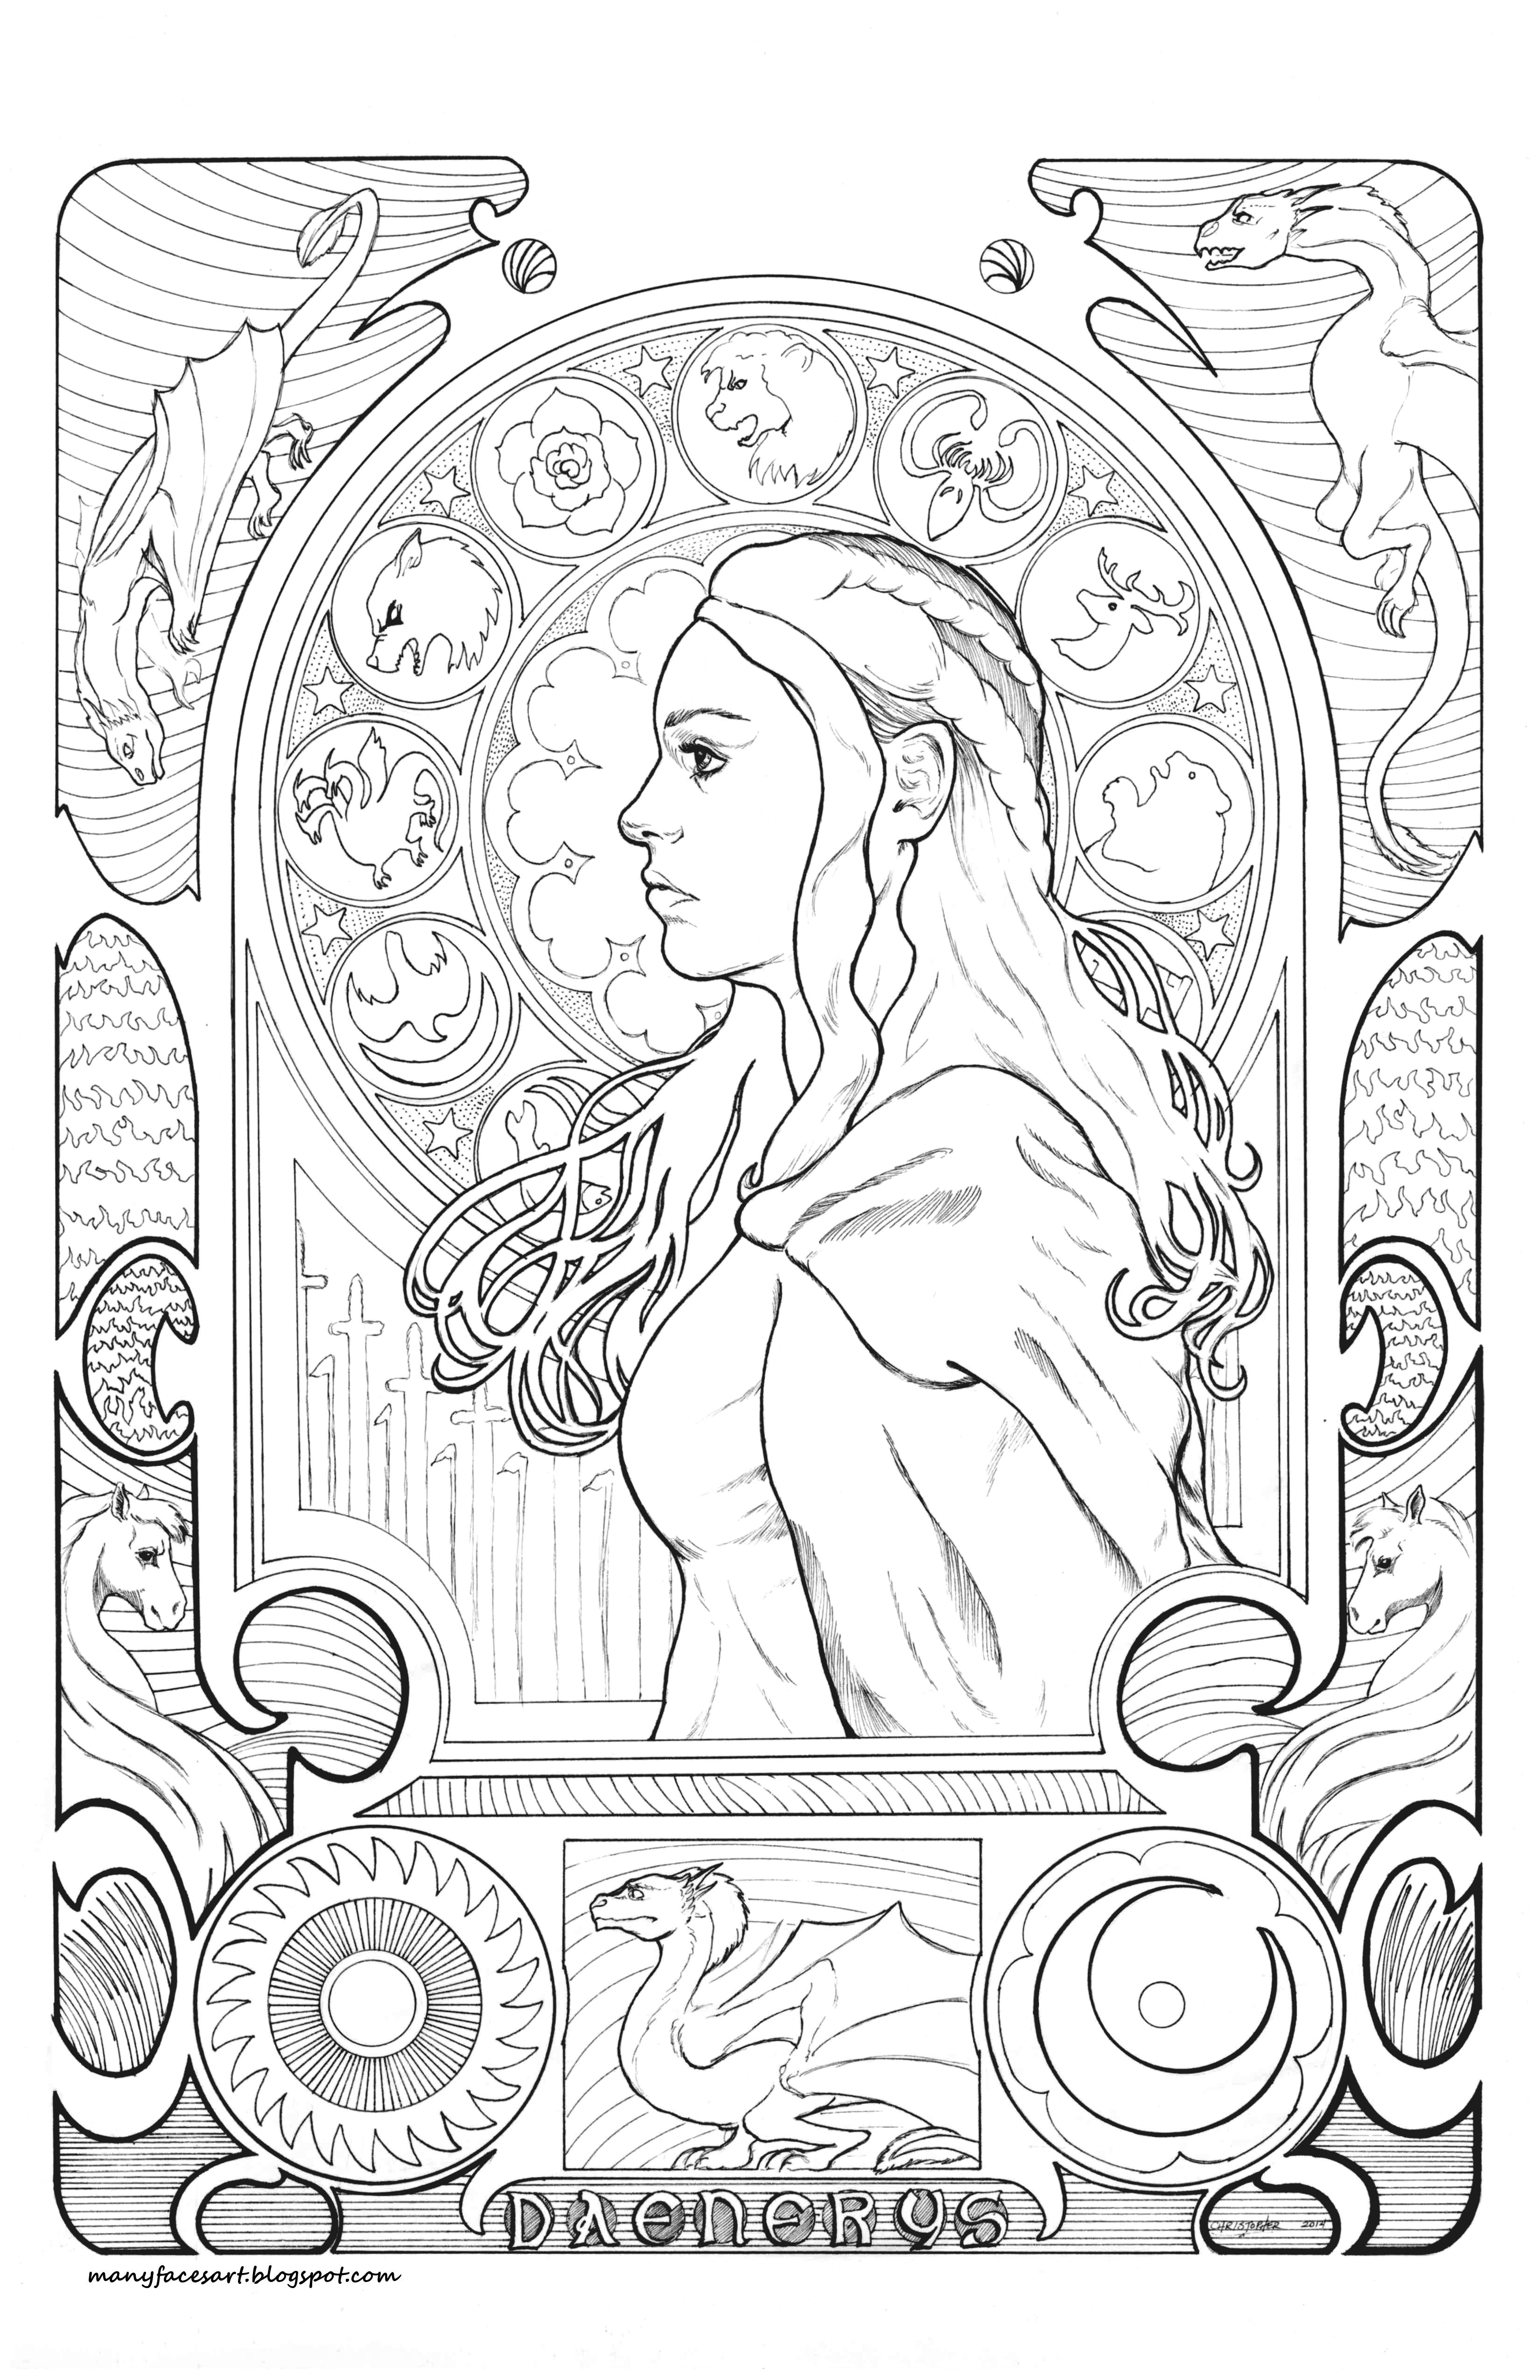 game of thrones coloring pages game of thrones coloring pages to download and print for free game thrones of pages coloring